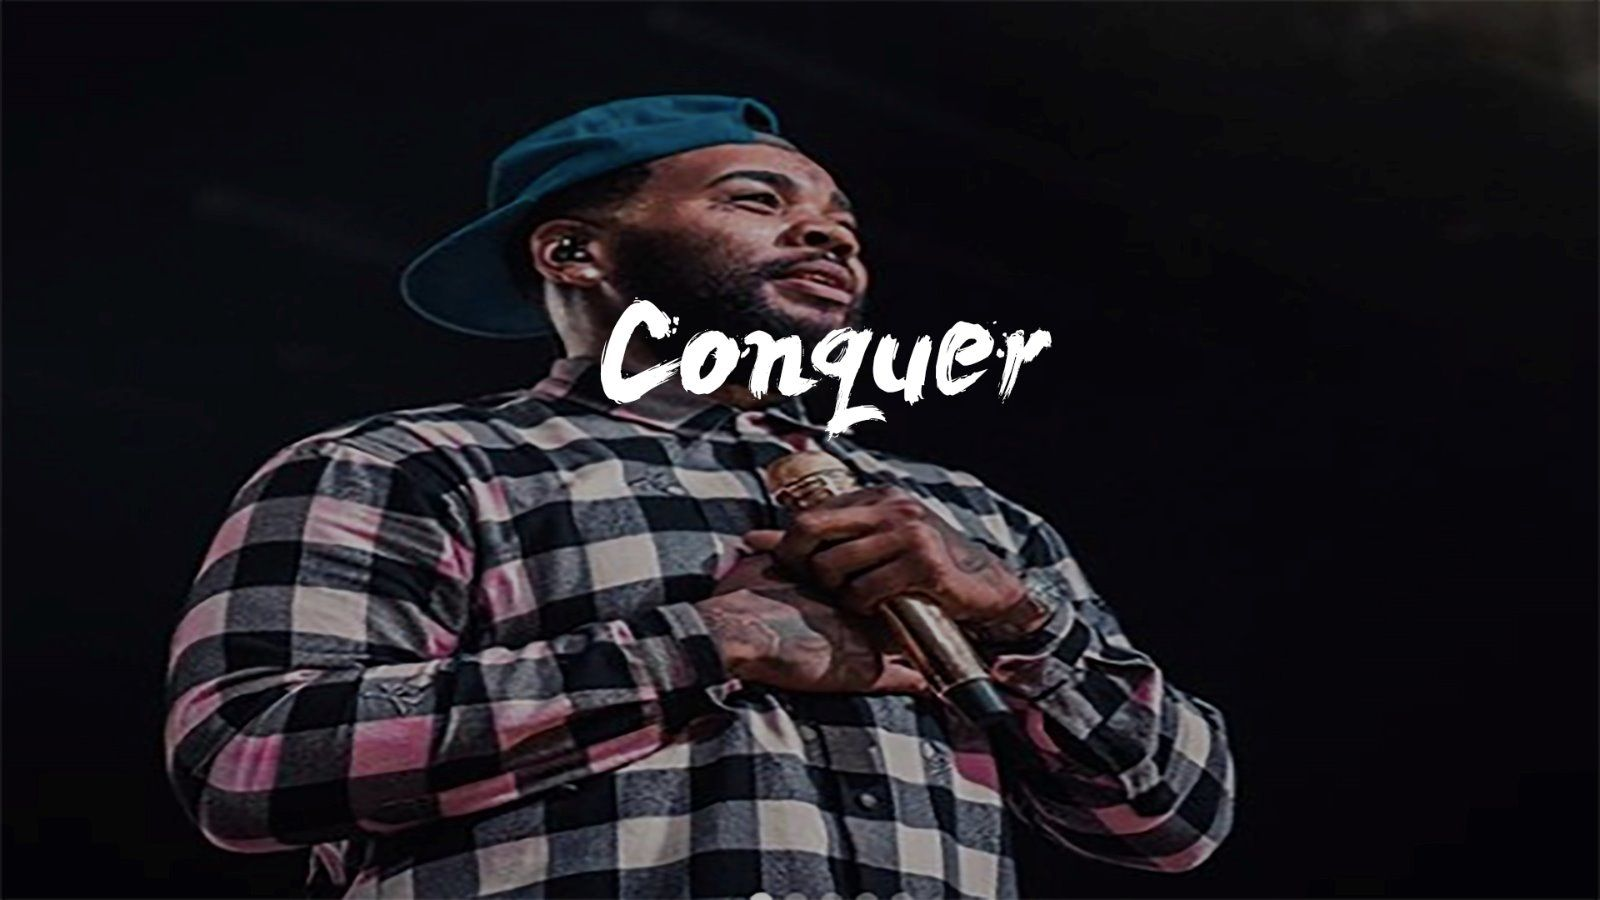 Devin Beatz - Kevin Gates Type Beat 2019 | Conquer uploaded by Devin